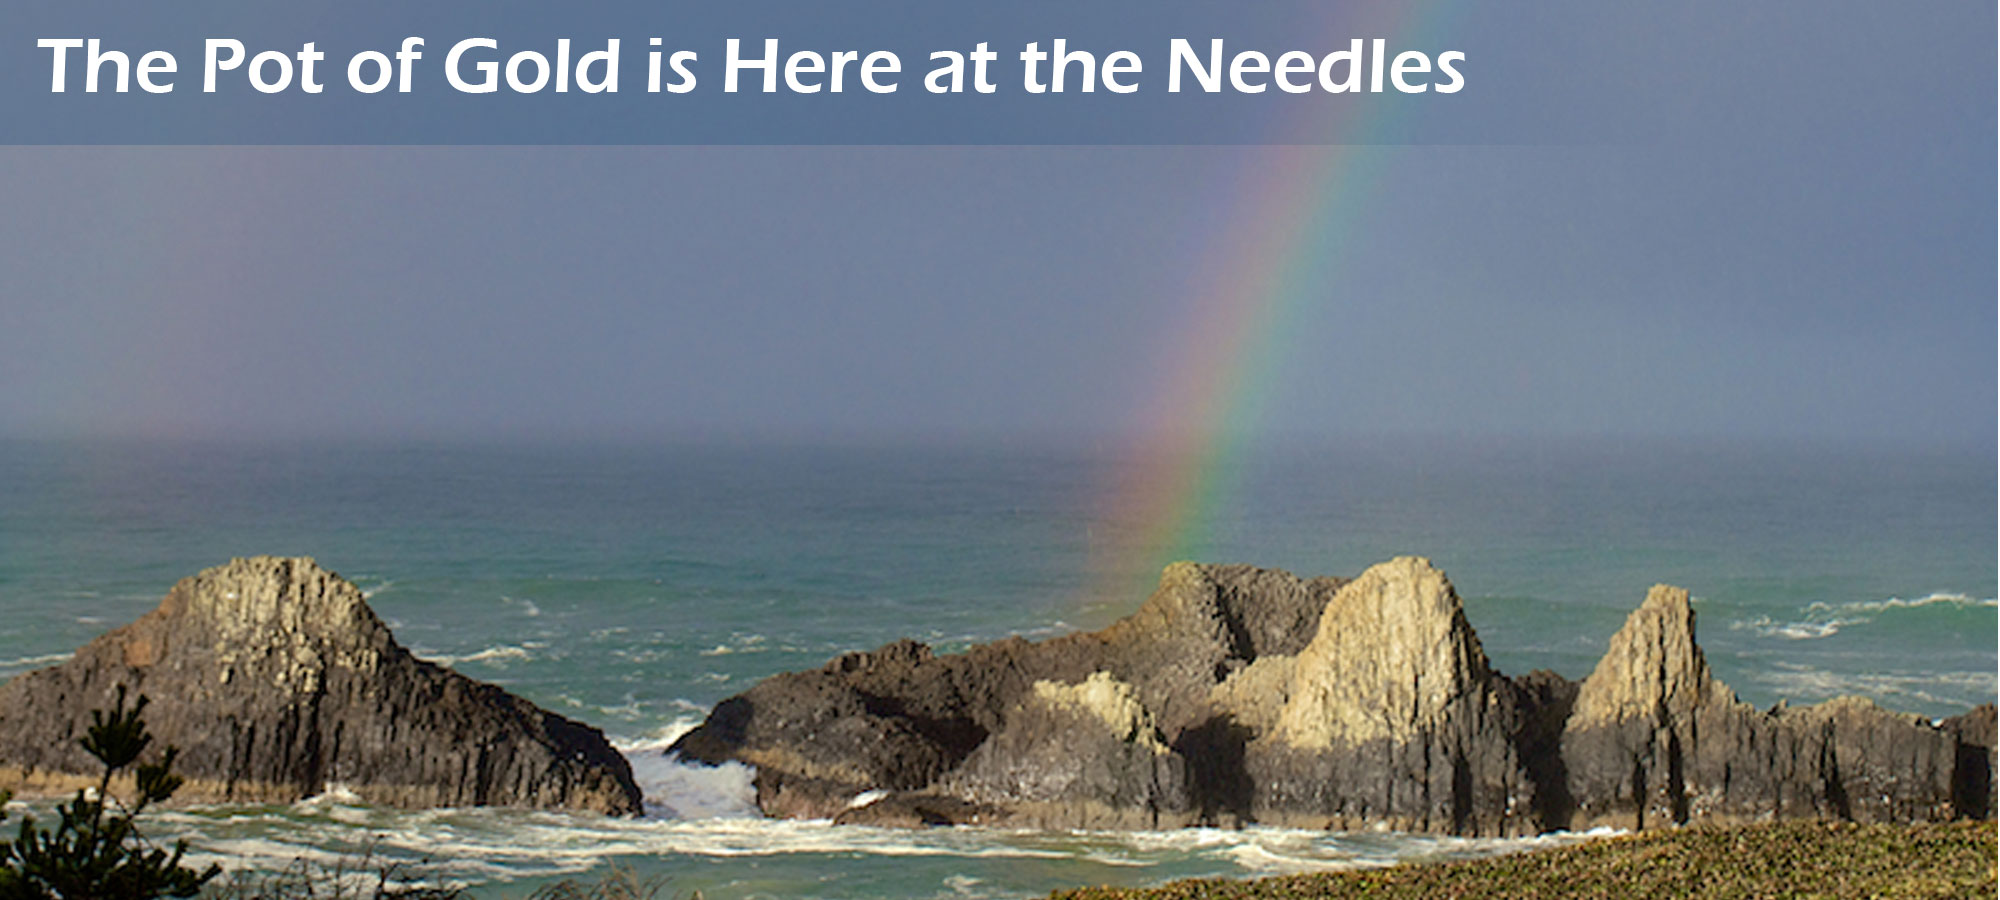 The Pot of Gold is Here at the Needles